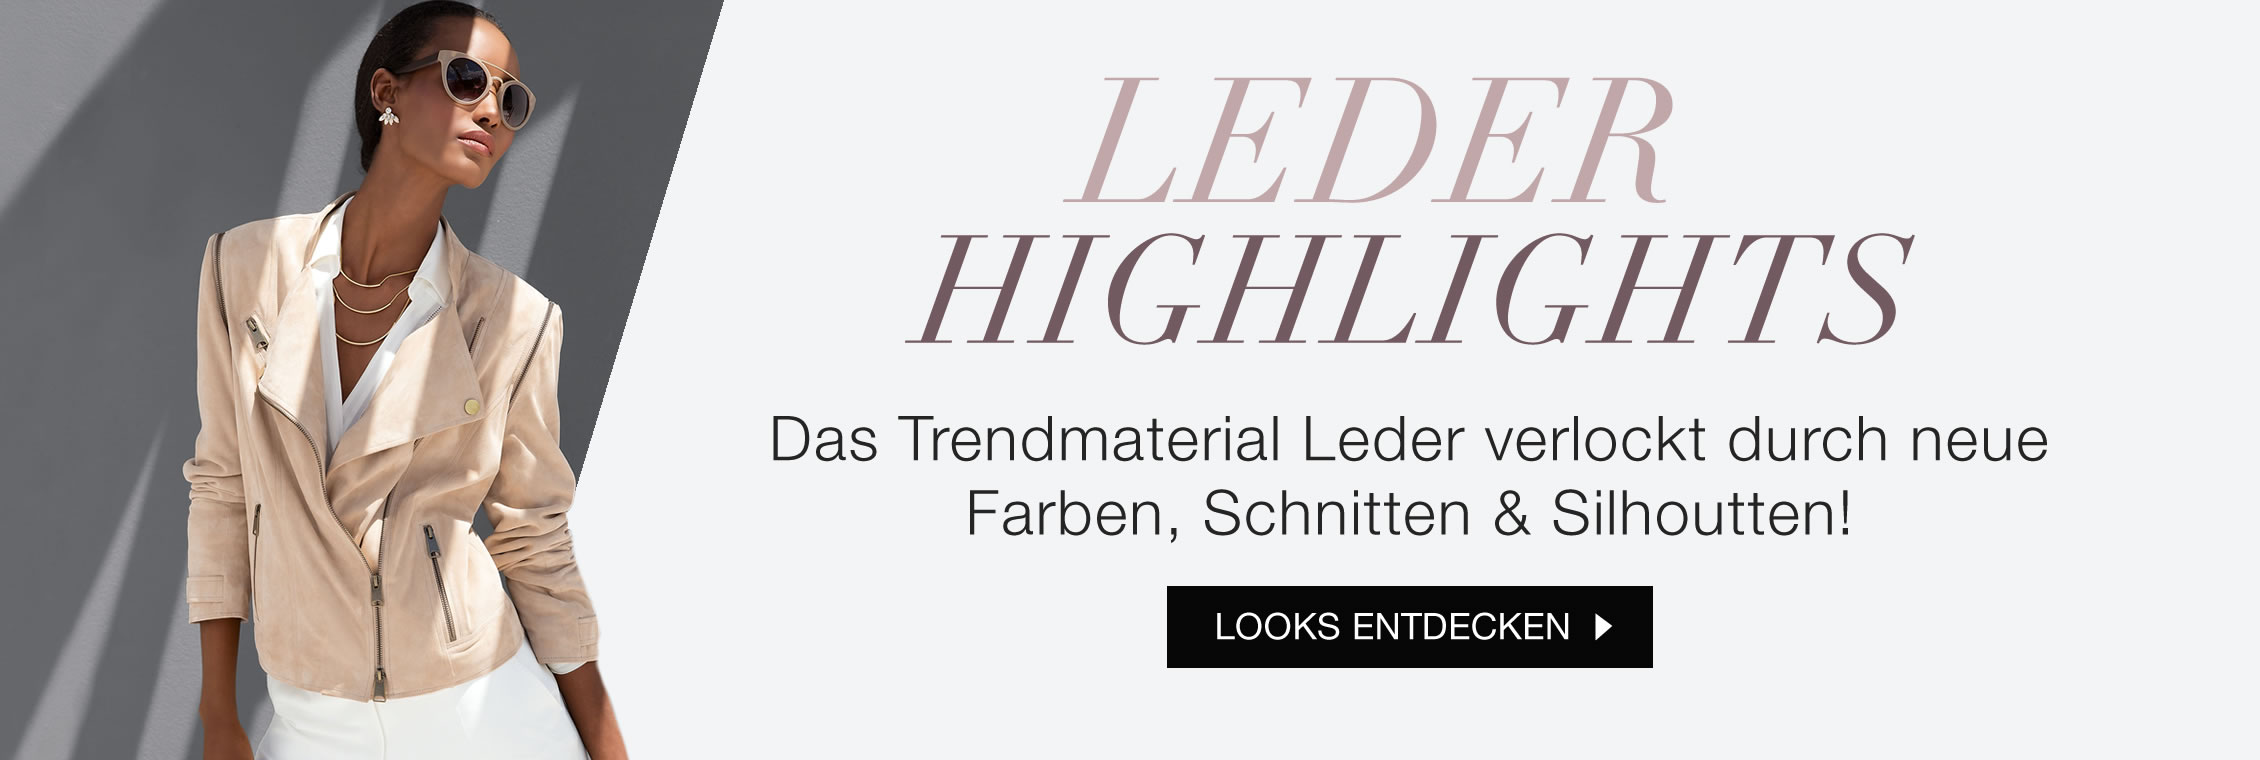 Leder Highlights entdecken